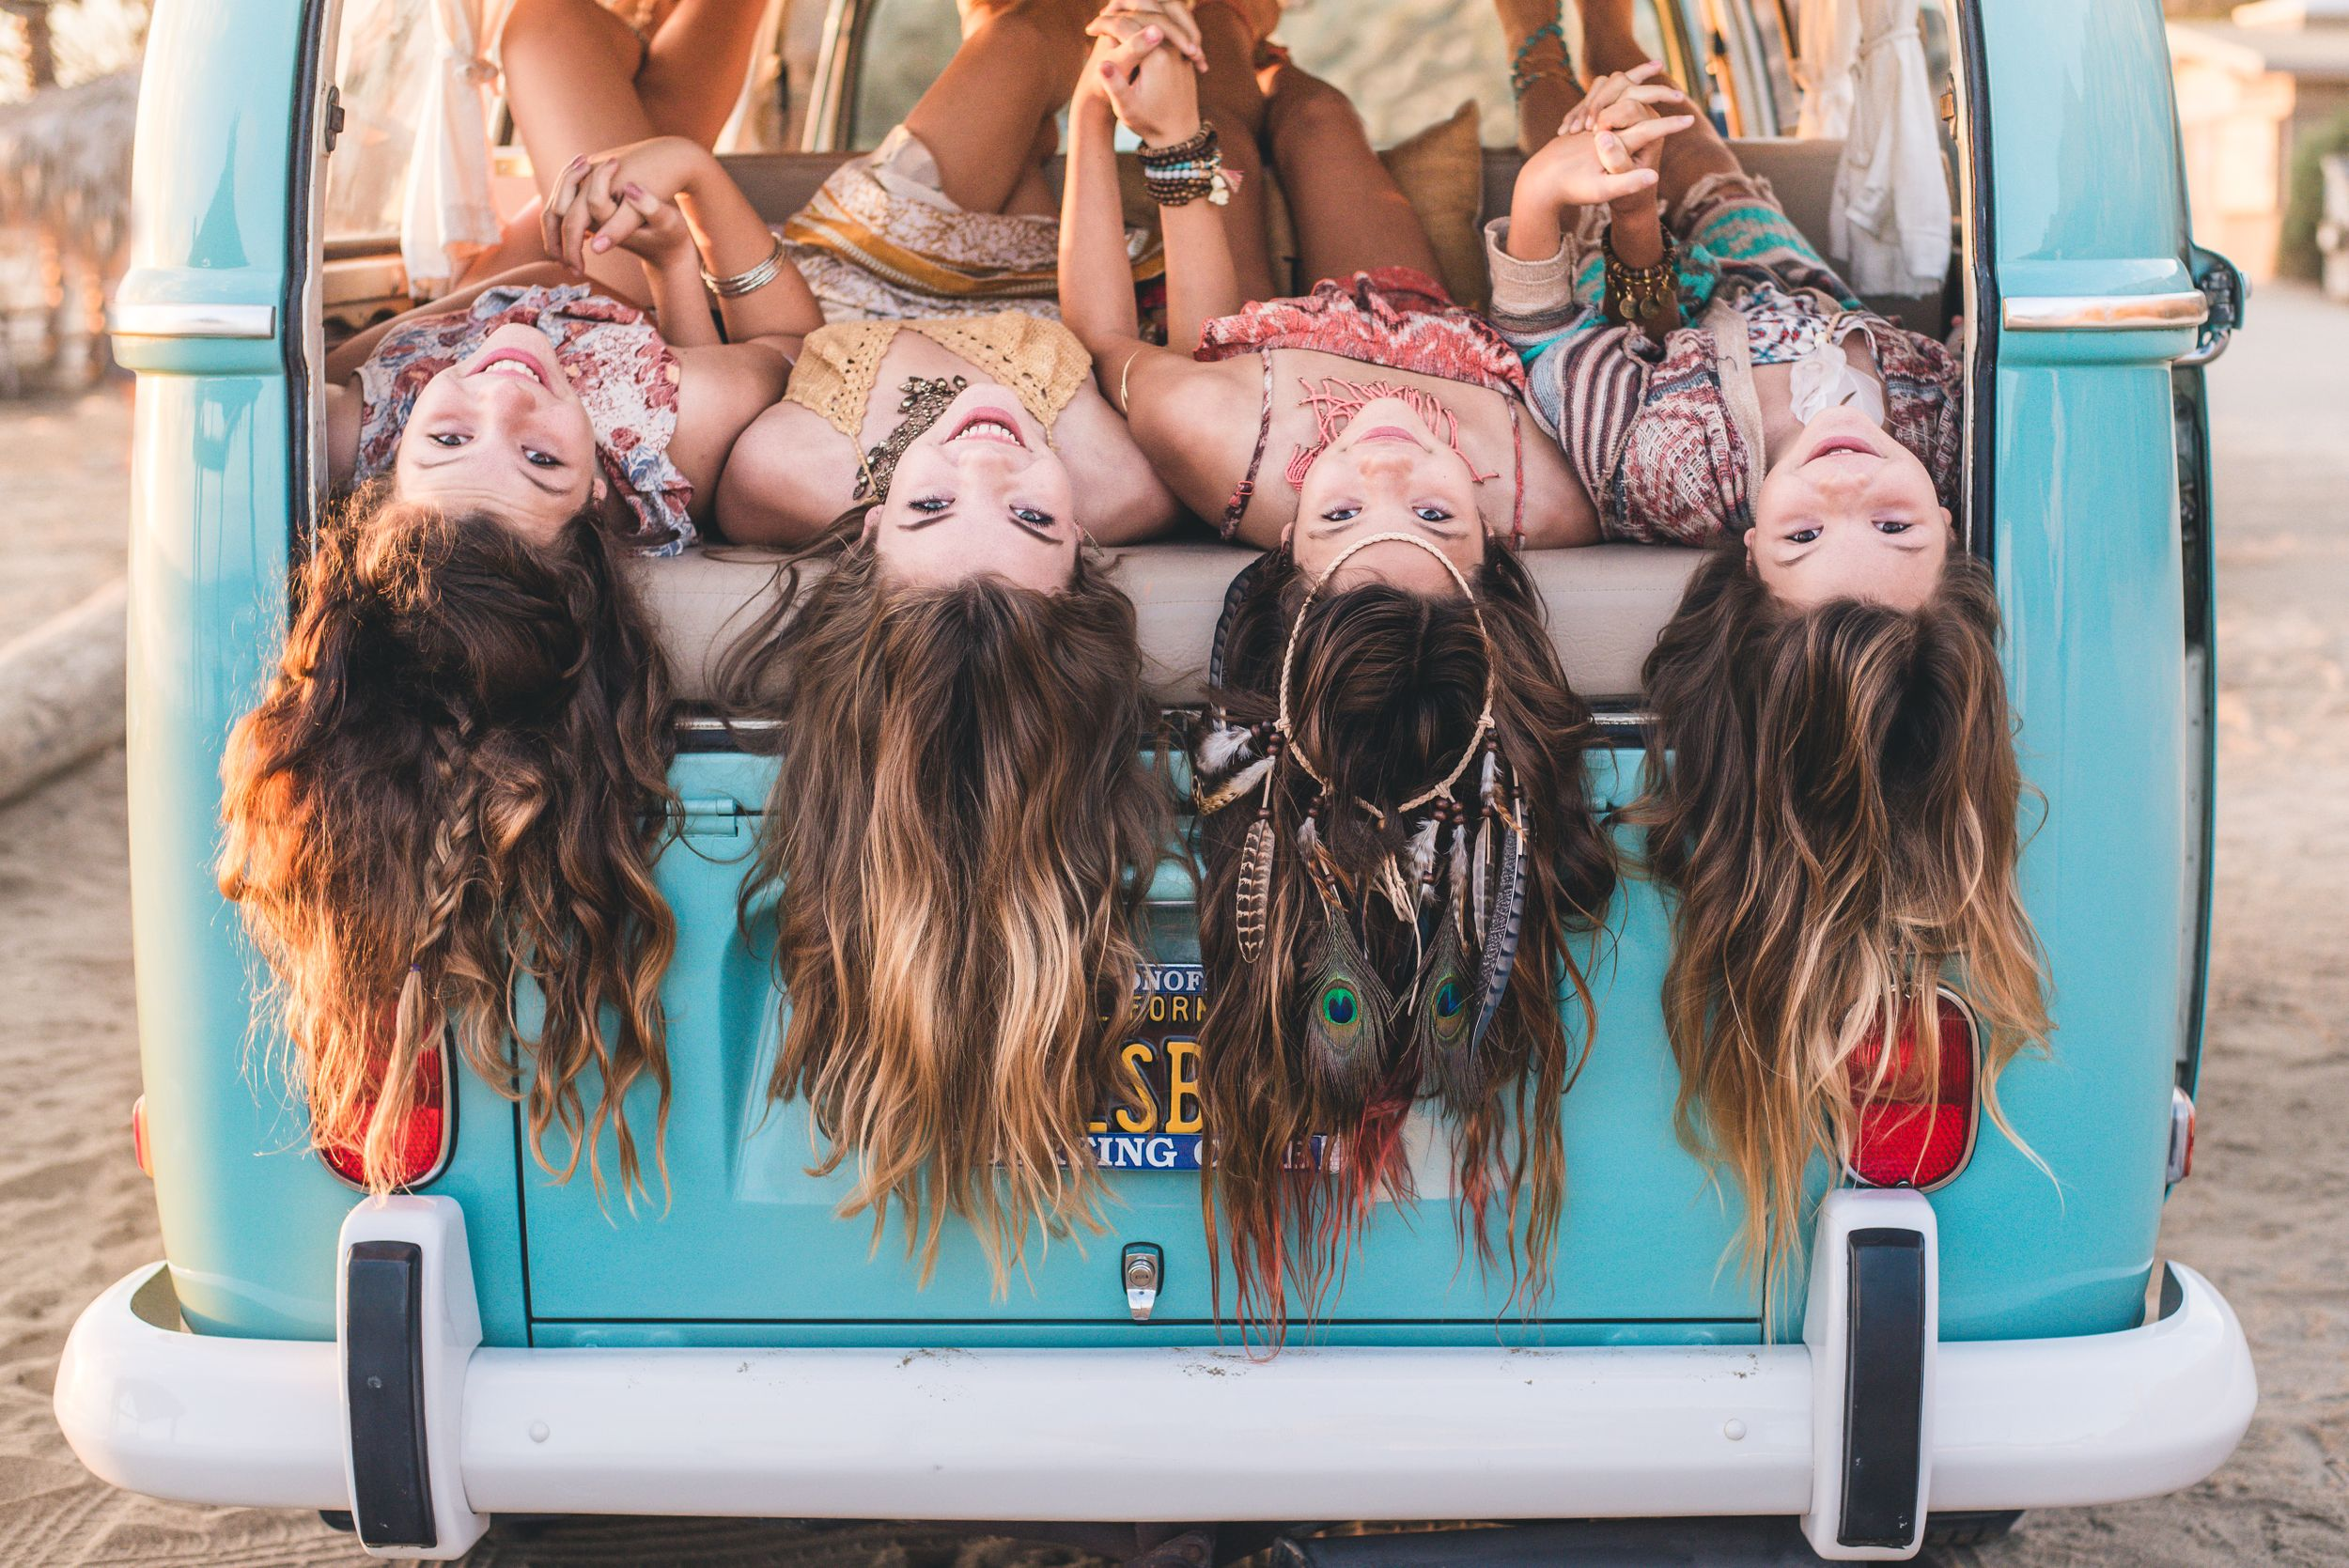 Teen girls in Volkswagen Bus  on the beach in Dana Point, CA